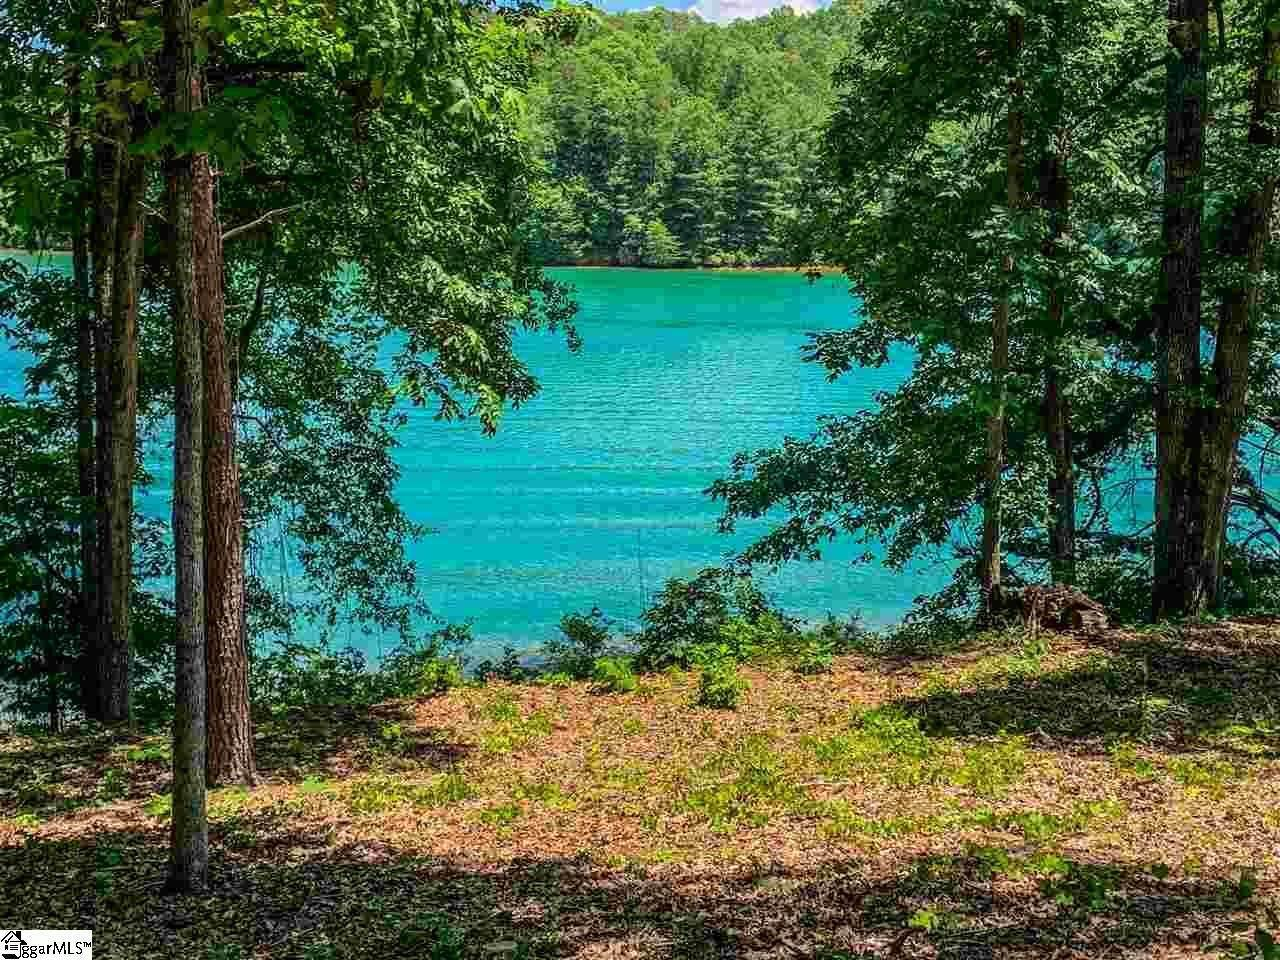 2. Residential Lot for Sale at The Reserve At Lake Keowee, Sunset, SC 29685